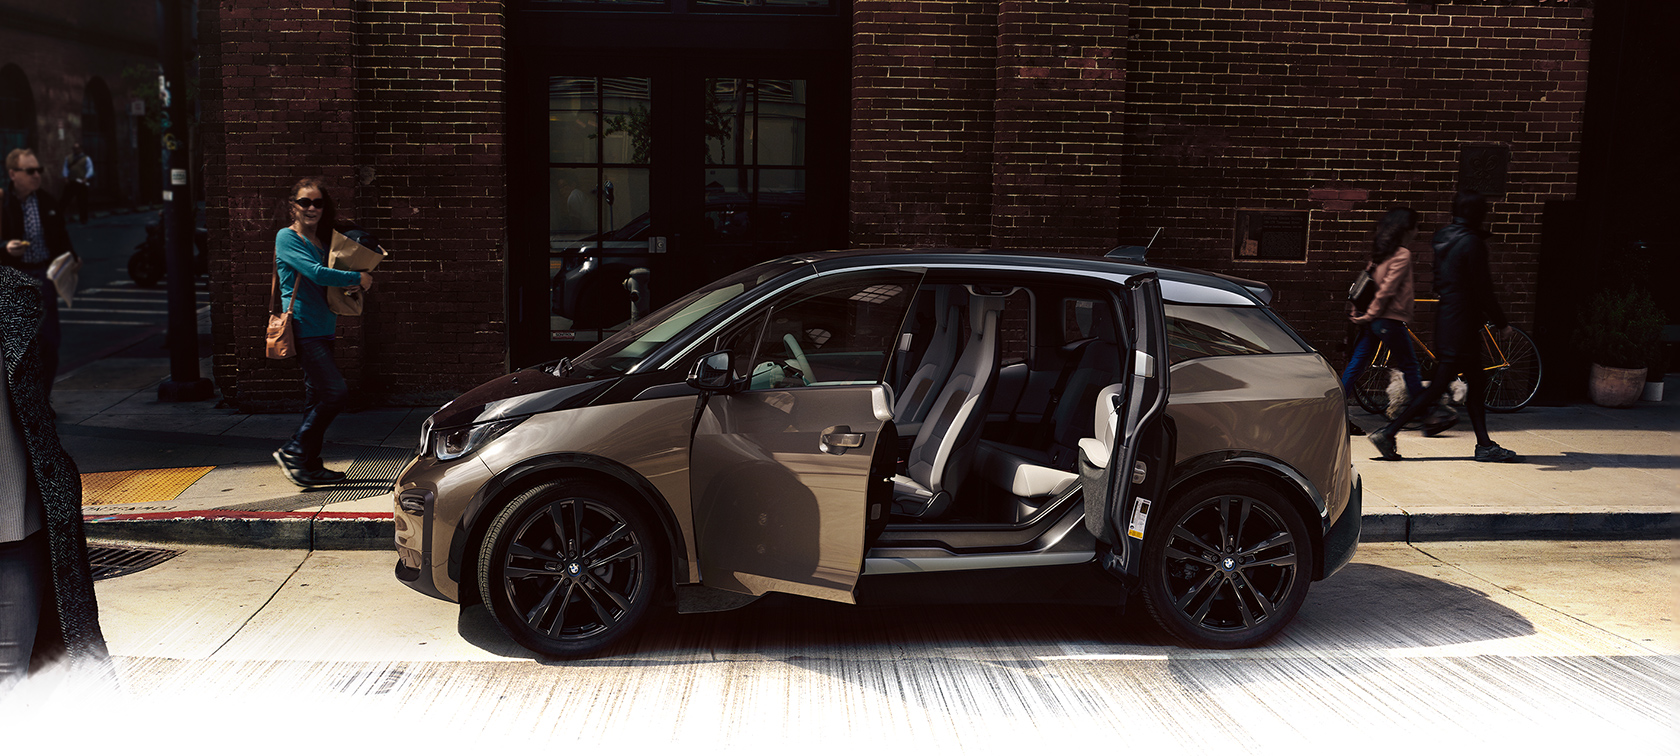 BMW i-Series i3 modern brown city car with unique door openings